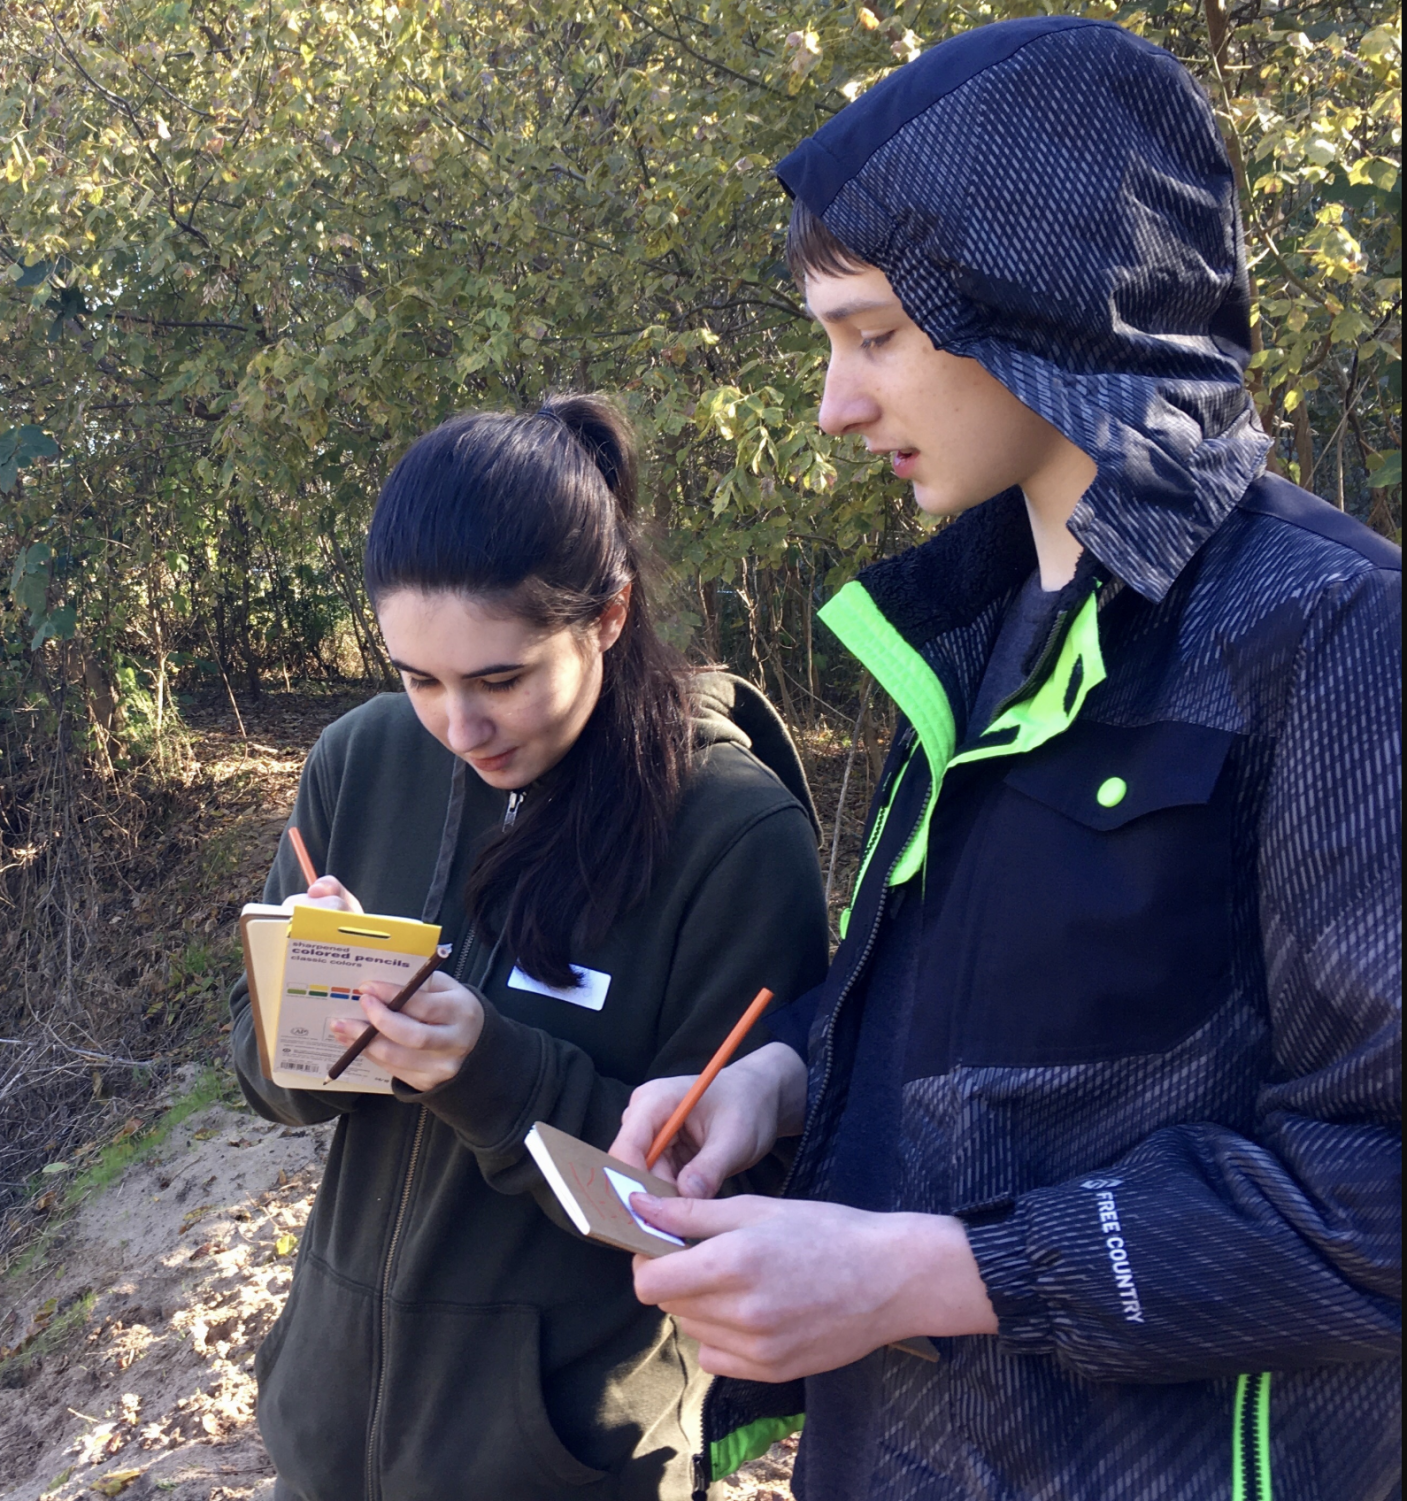 Maura O'Sullivan, co-founder of Branch Out Initiative, teaches her younger brother, Finn O'Sullivan, about wildlife. Branch Out specializes in leading inclusive nature hikes.